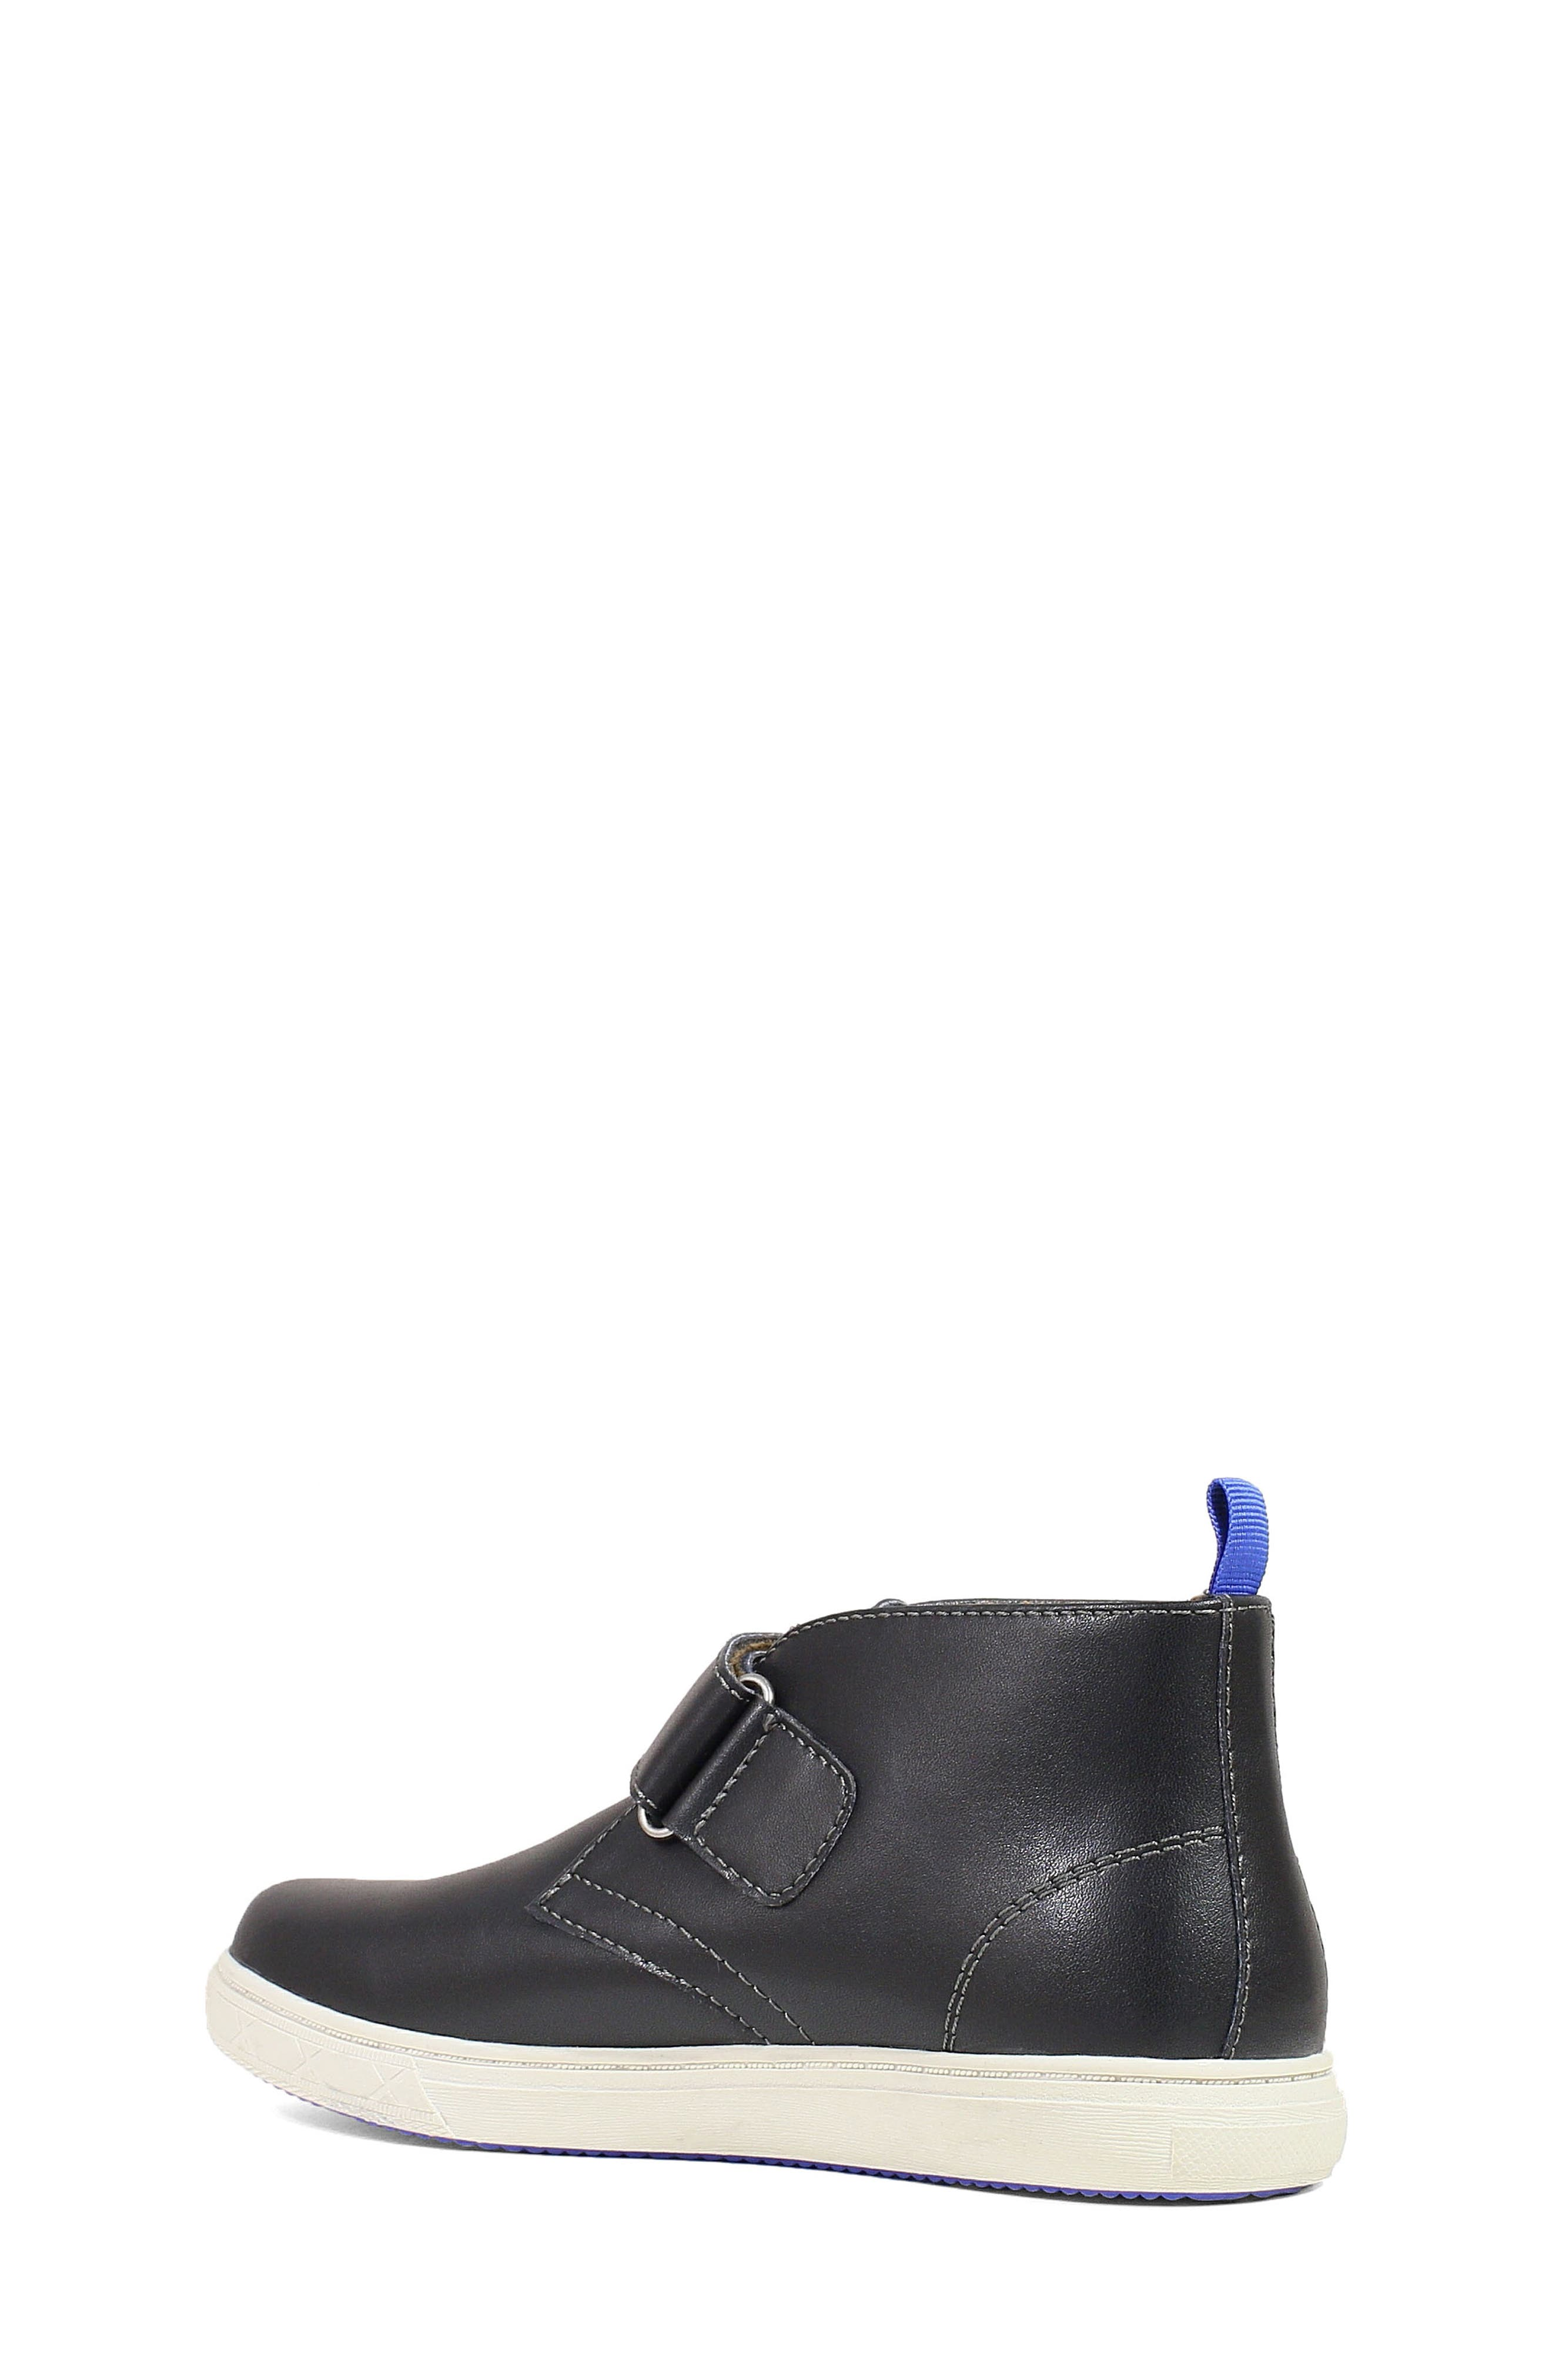 Curb Chukka Boot,                             Alternate thumbnail 2, color,                             BLACK LEATHER